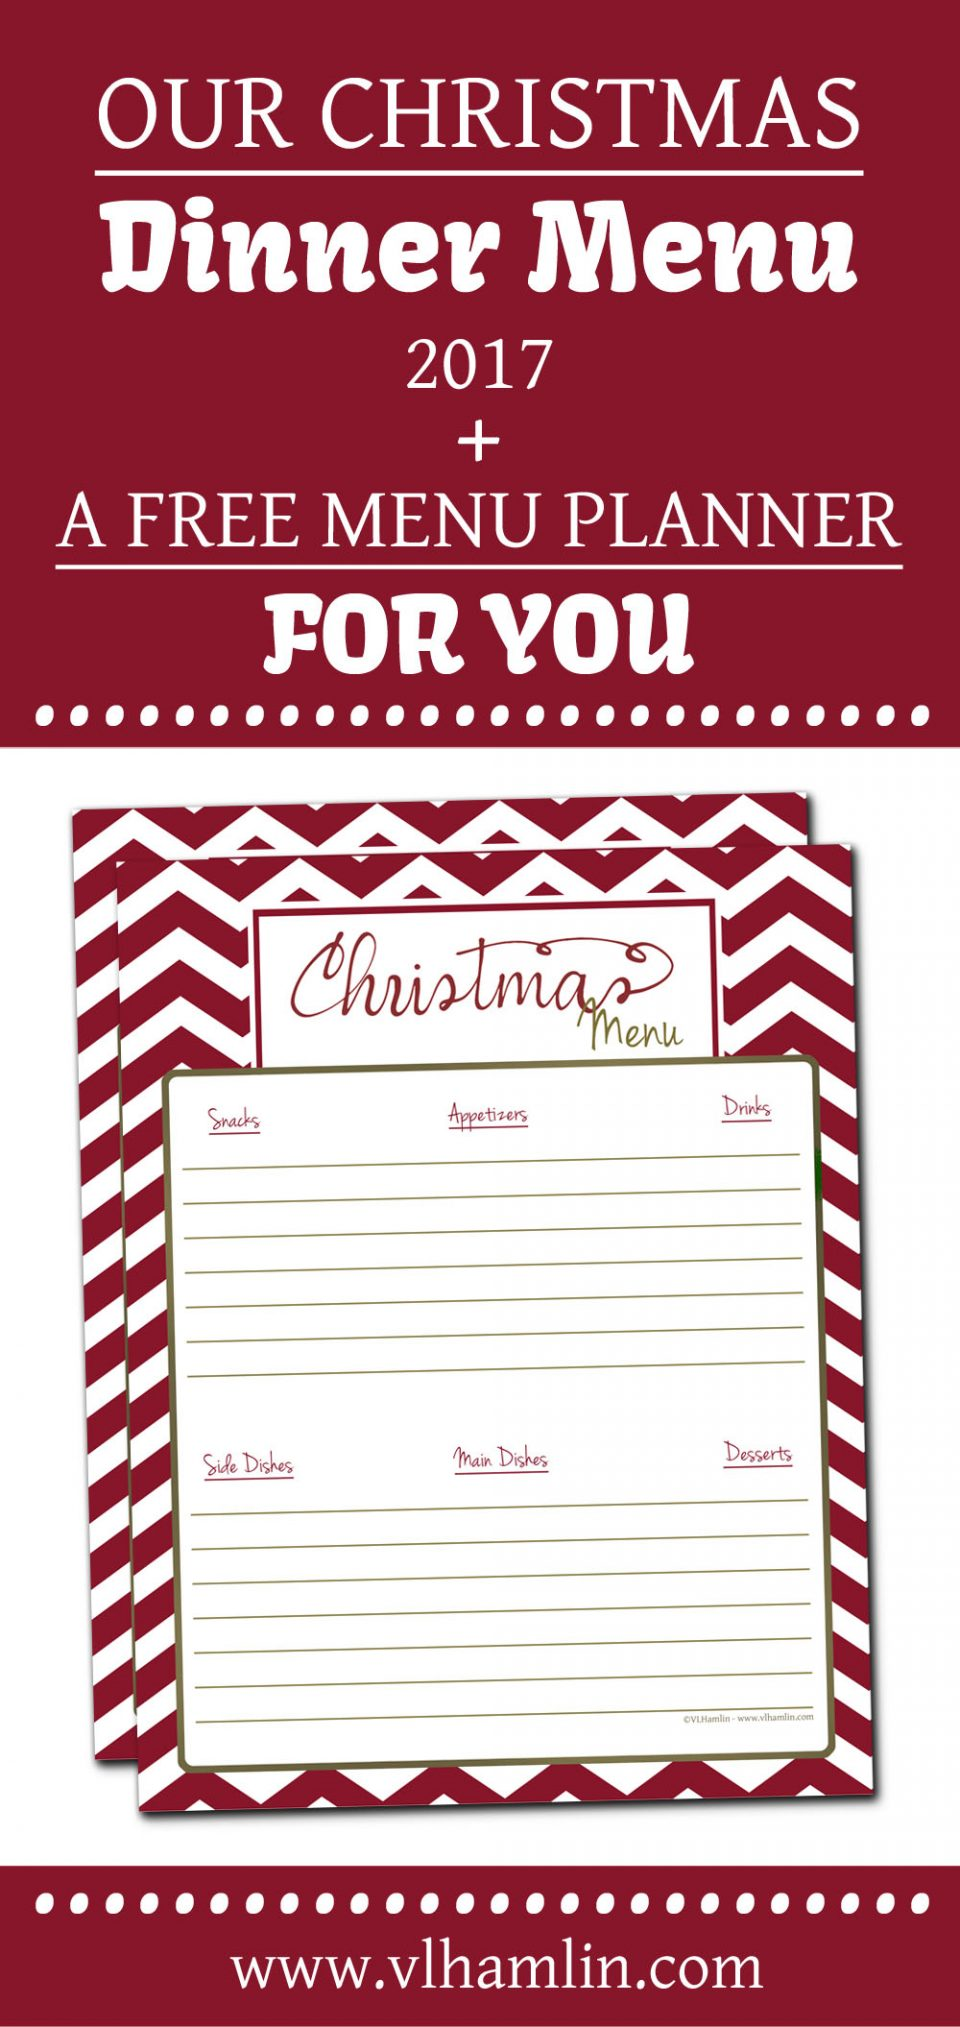 Our Christmas Dinner Menu + Free Printable Menu Planner